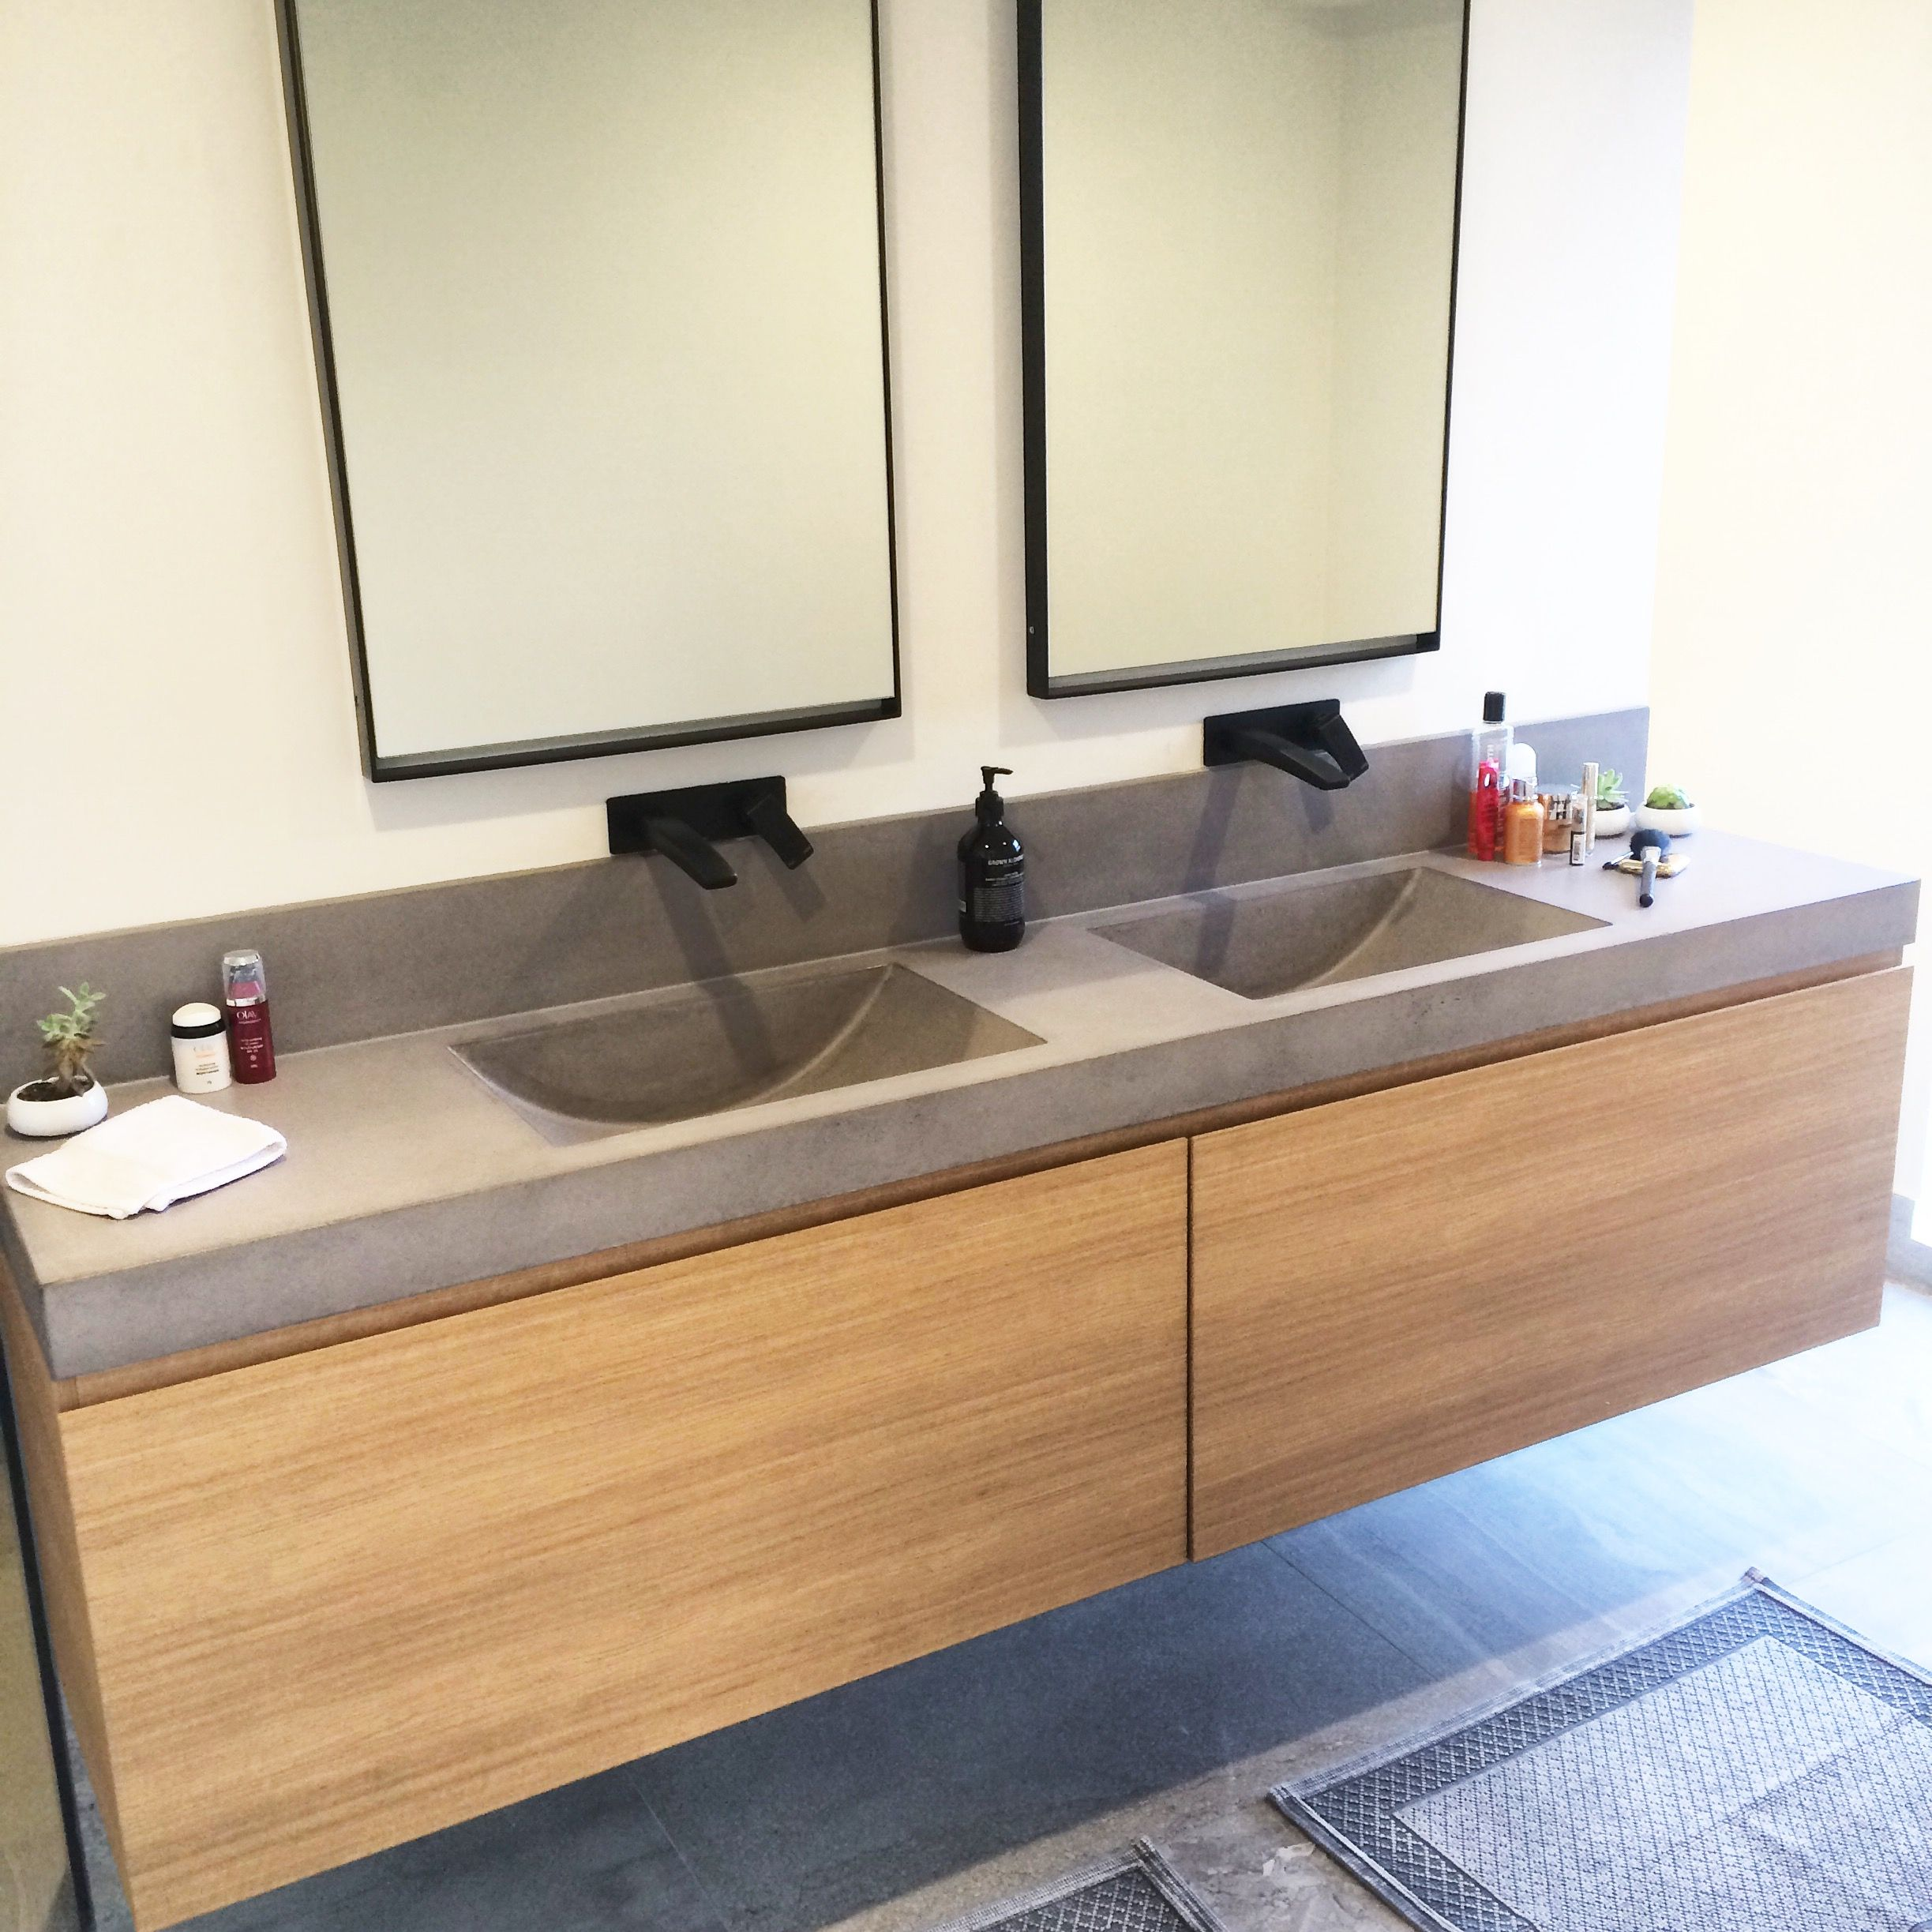 Polished Concrete Vanity Top with integrated sink by Mitchell Bink Concrete Design www